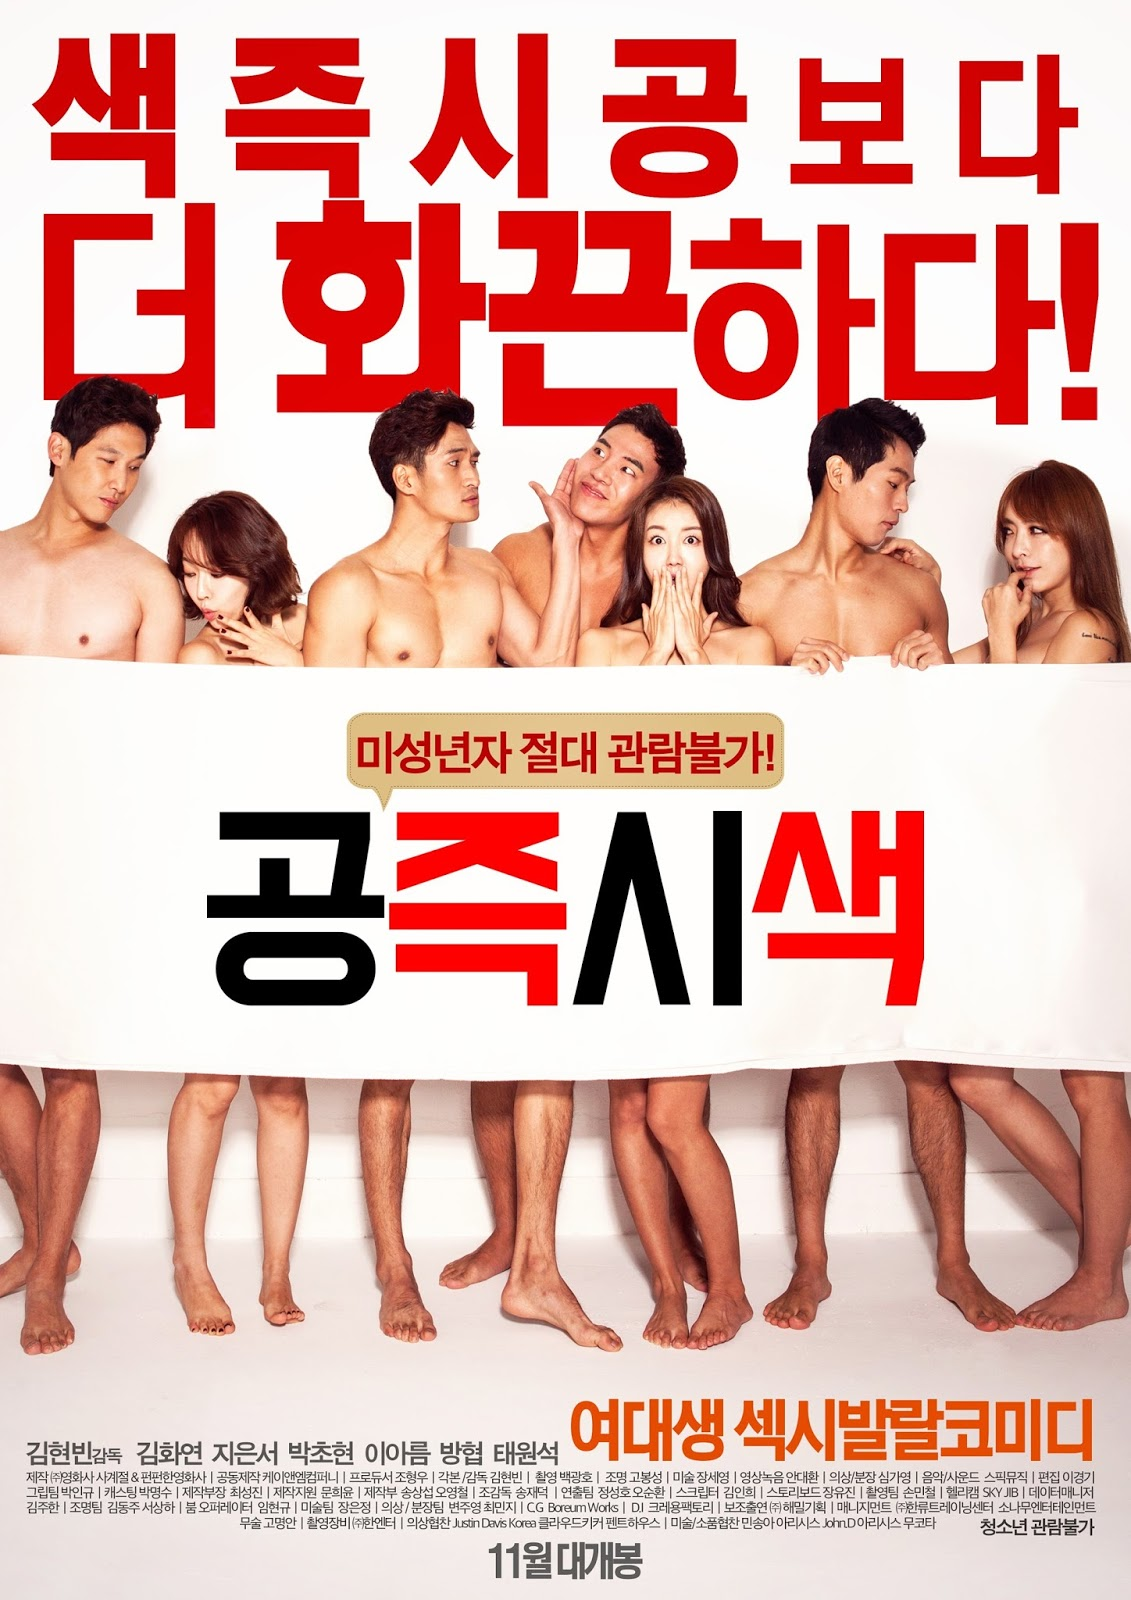 Mutual Relations (2015) 480p HDRip Cepet.in